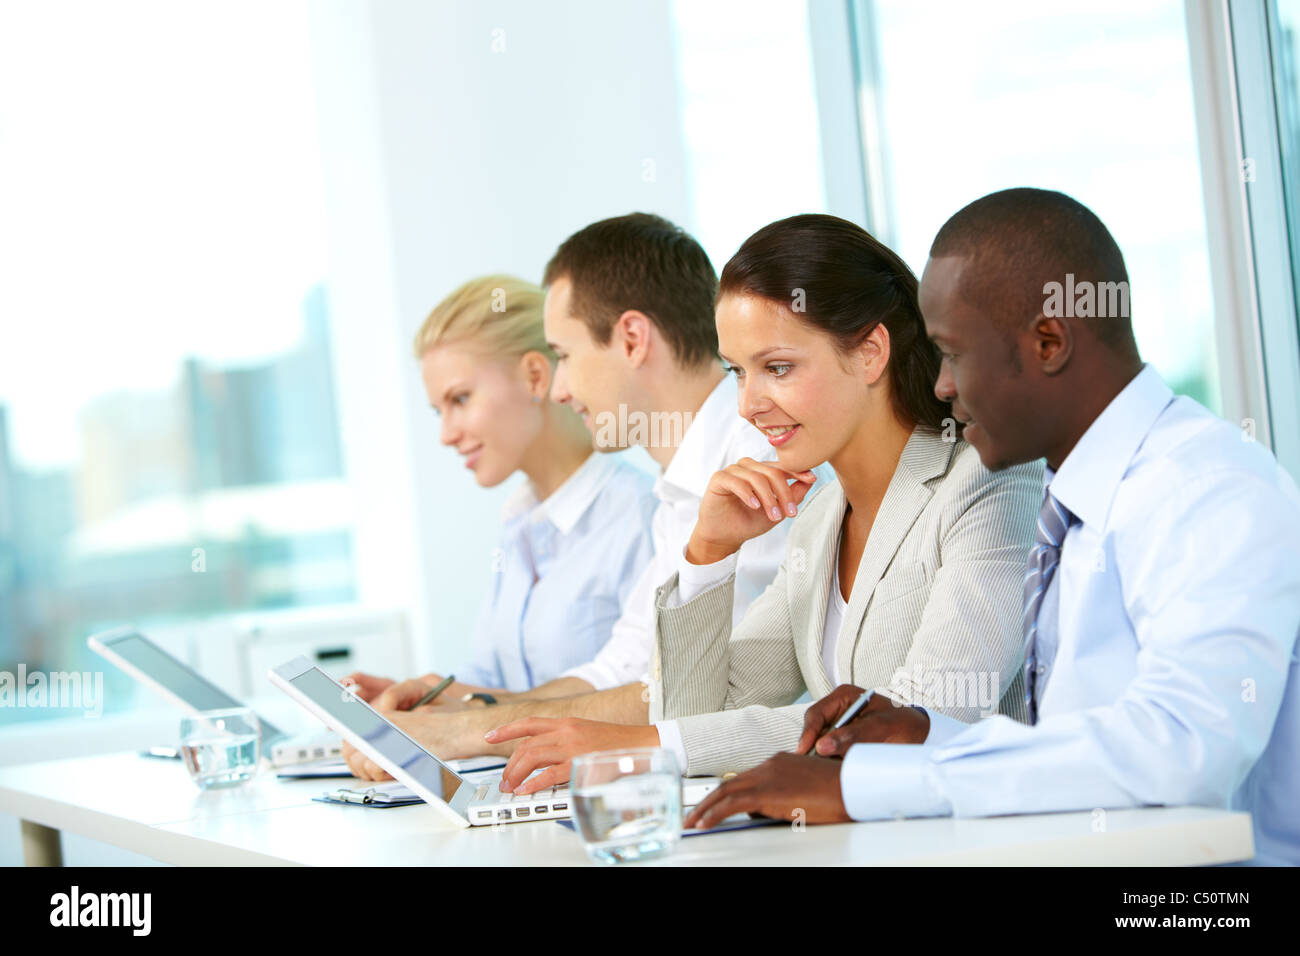 Group of business people planning work in office - Stock Image